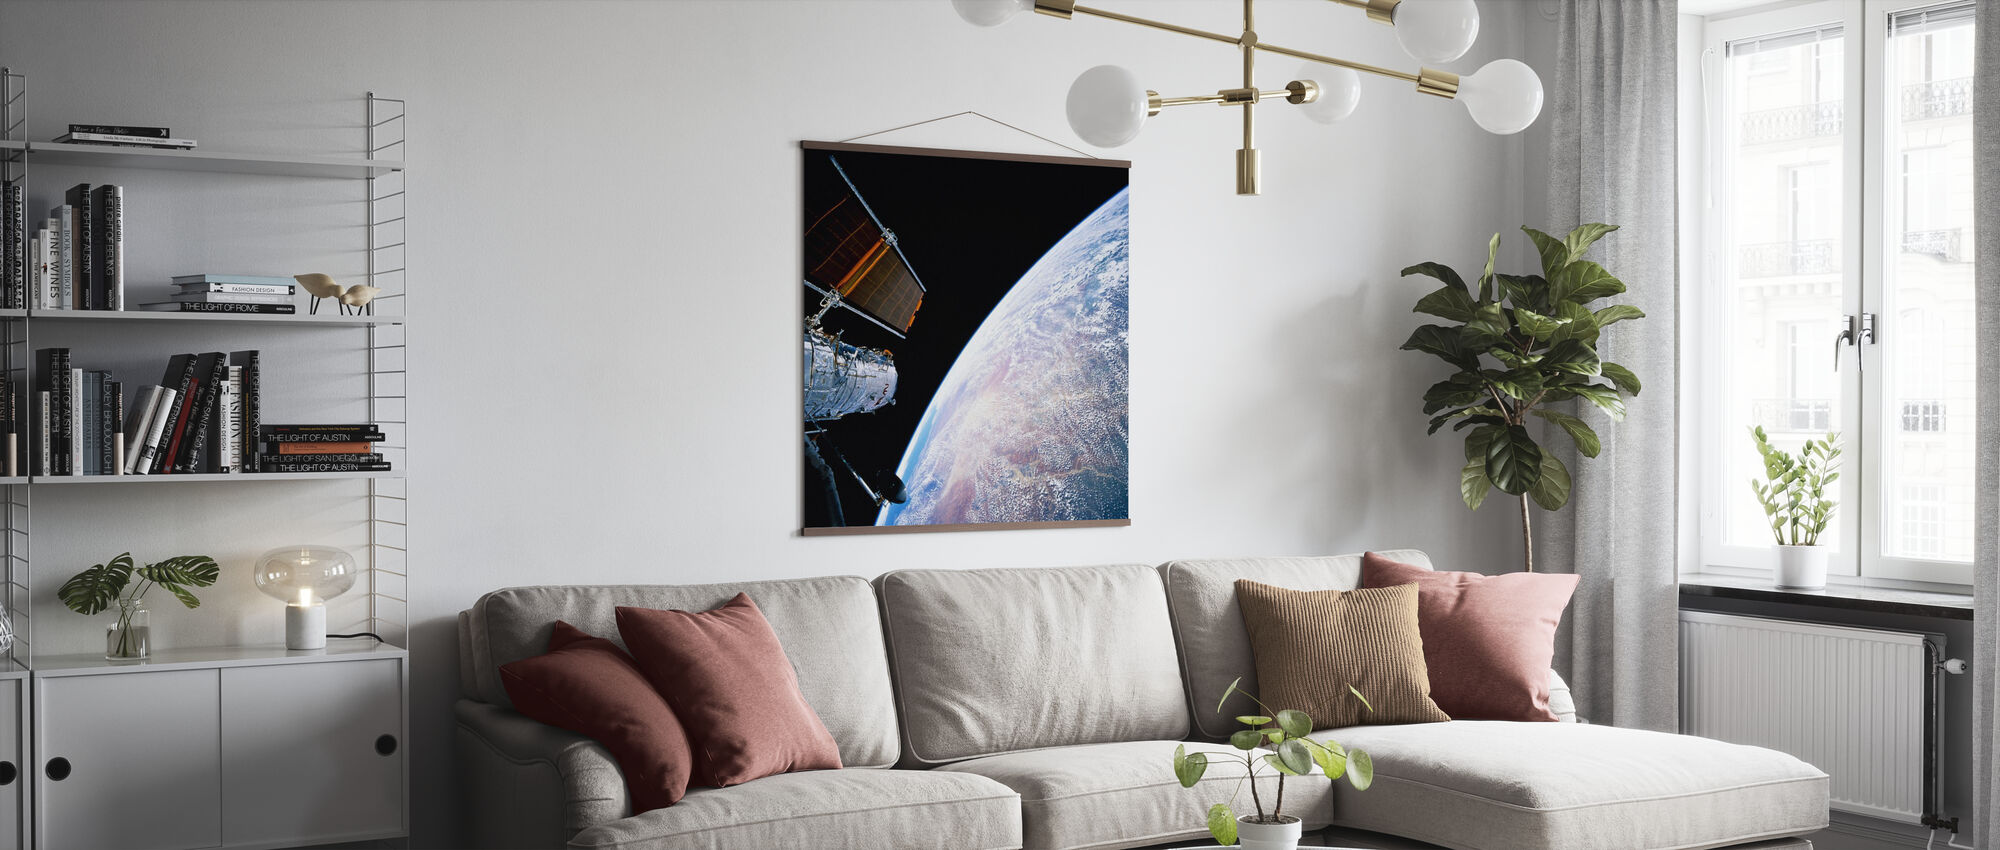 Hubble Space Telescope - Poster - Living Room